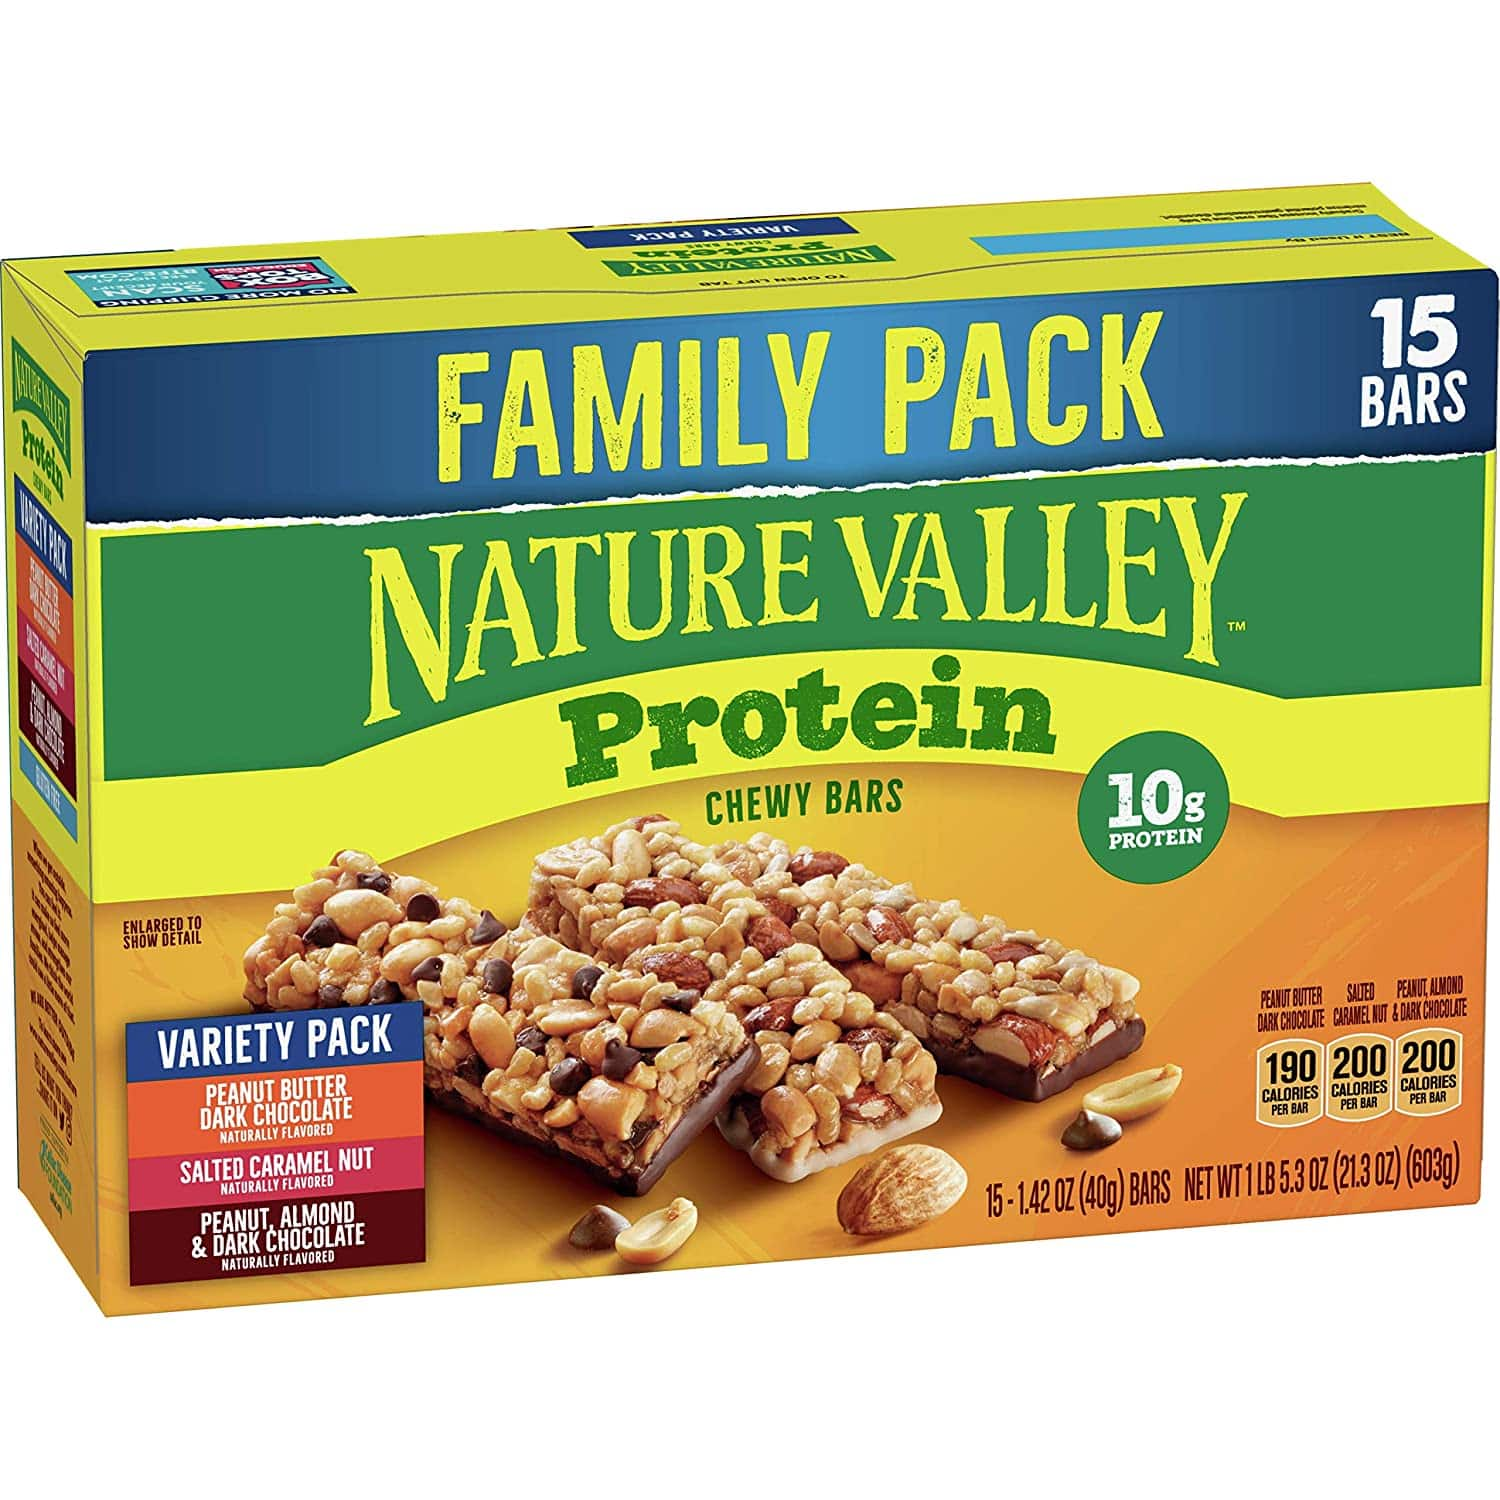 Nature Valley Chewy Granola Bars, Protein Variety Pack, Gluten Free, 21.3 oz $6.18 with coupon and S&S